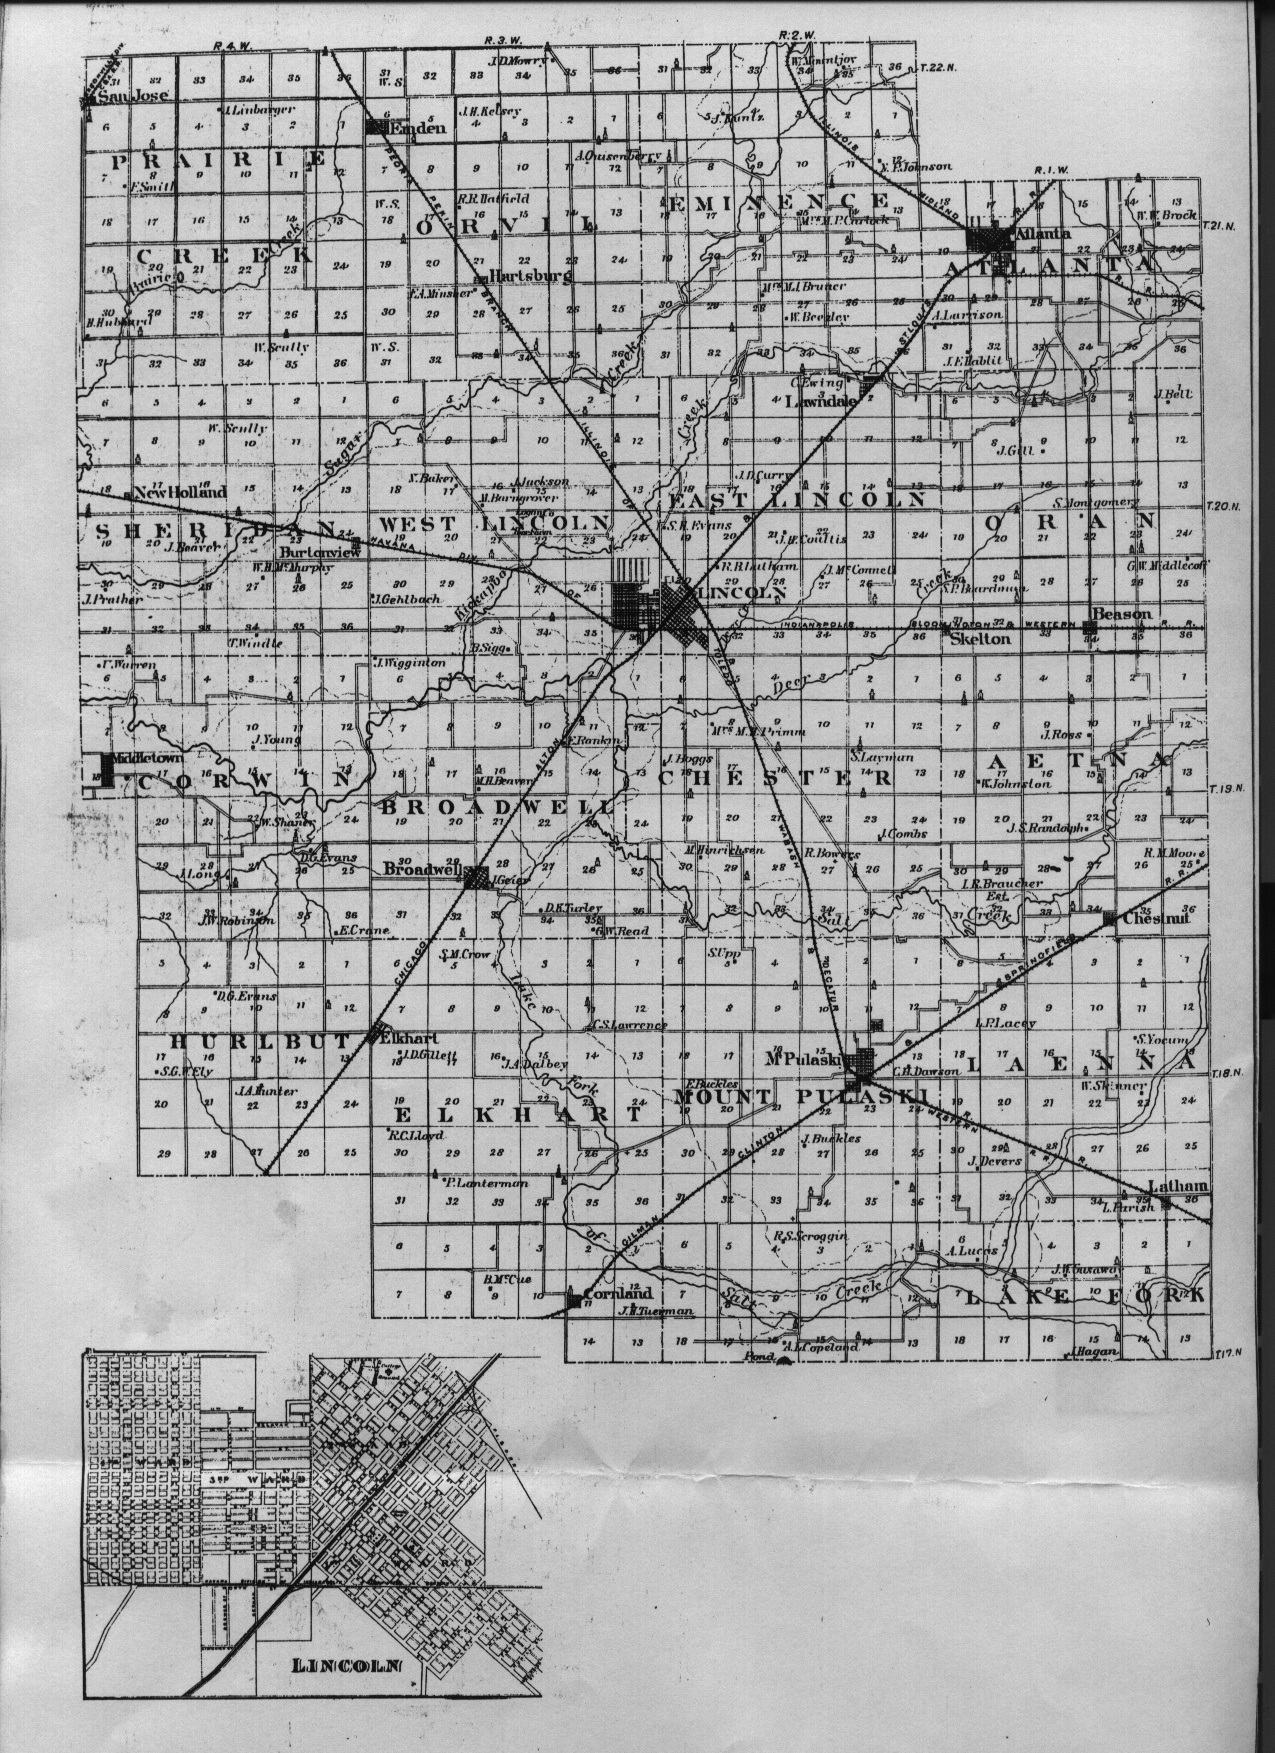 1876 Logan County map